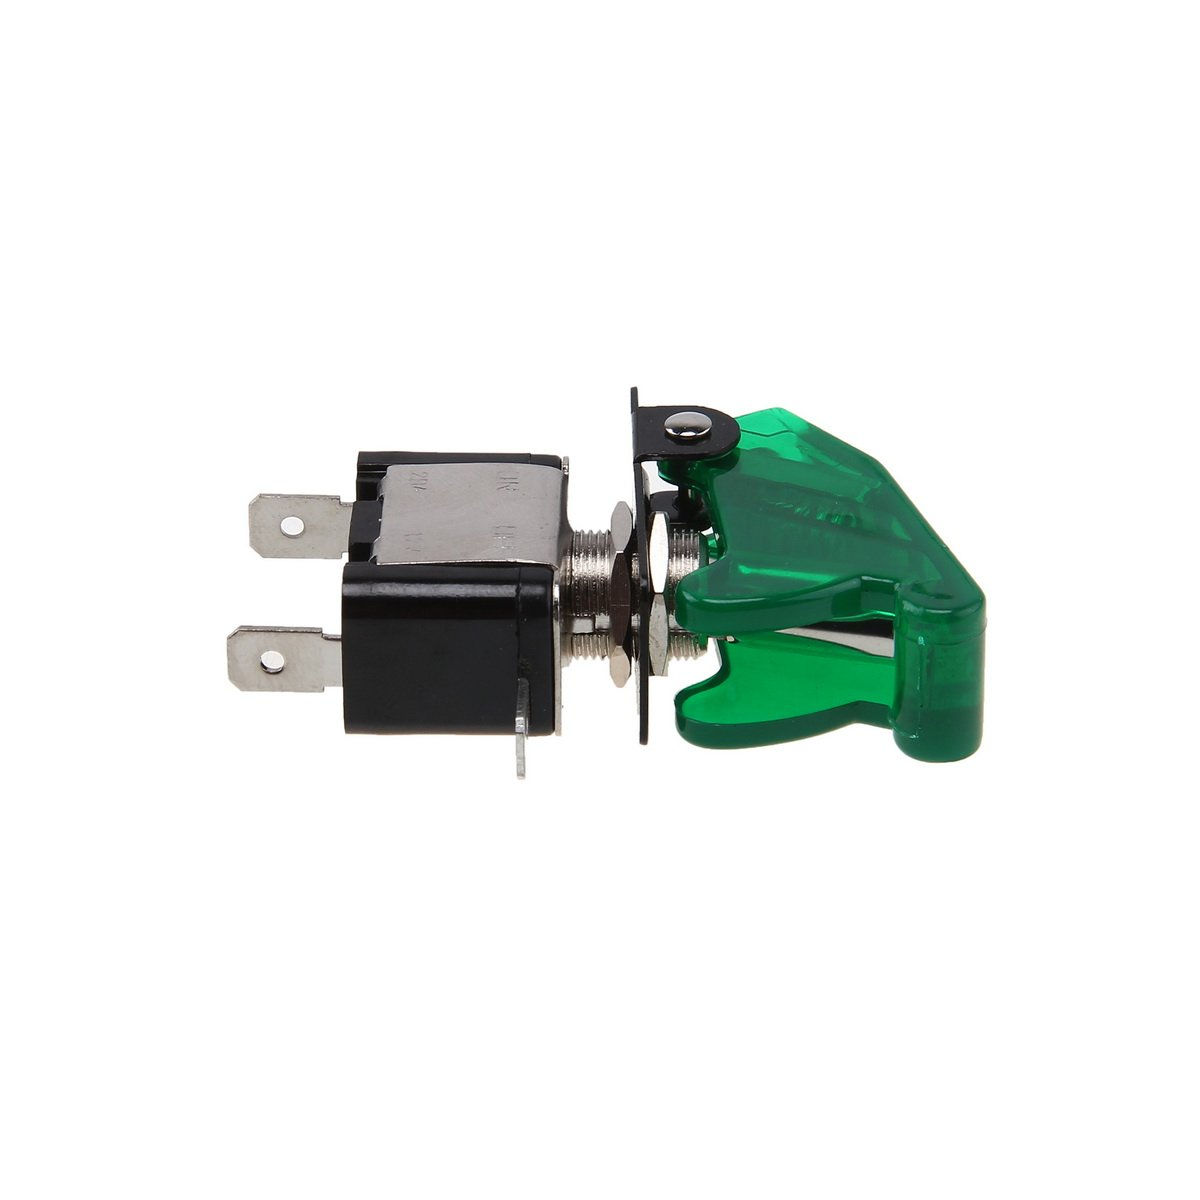 Possbay Car Auto Toggle LED Switch Green Missile Rocket On Off for Various Light Lamp 12V